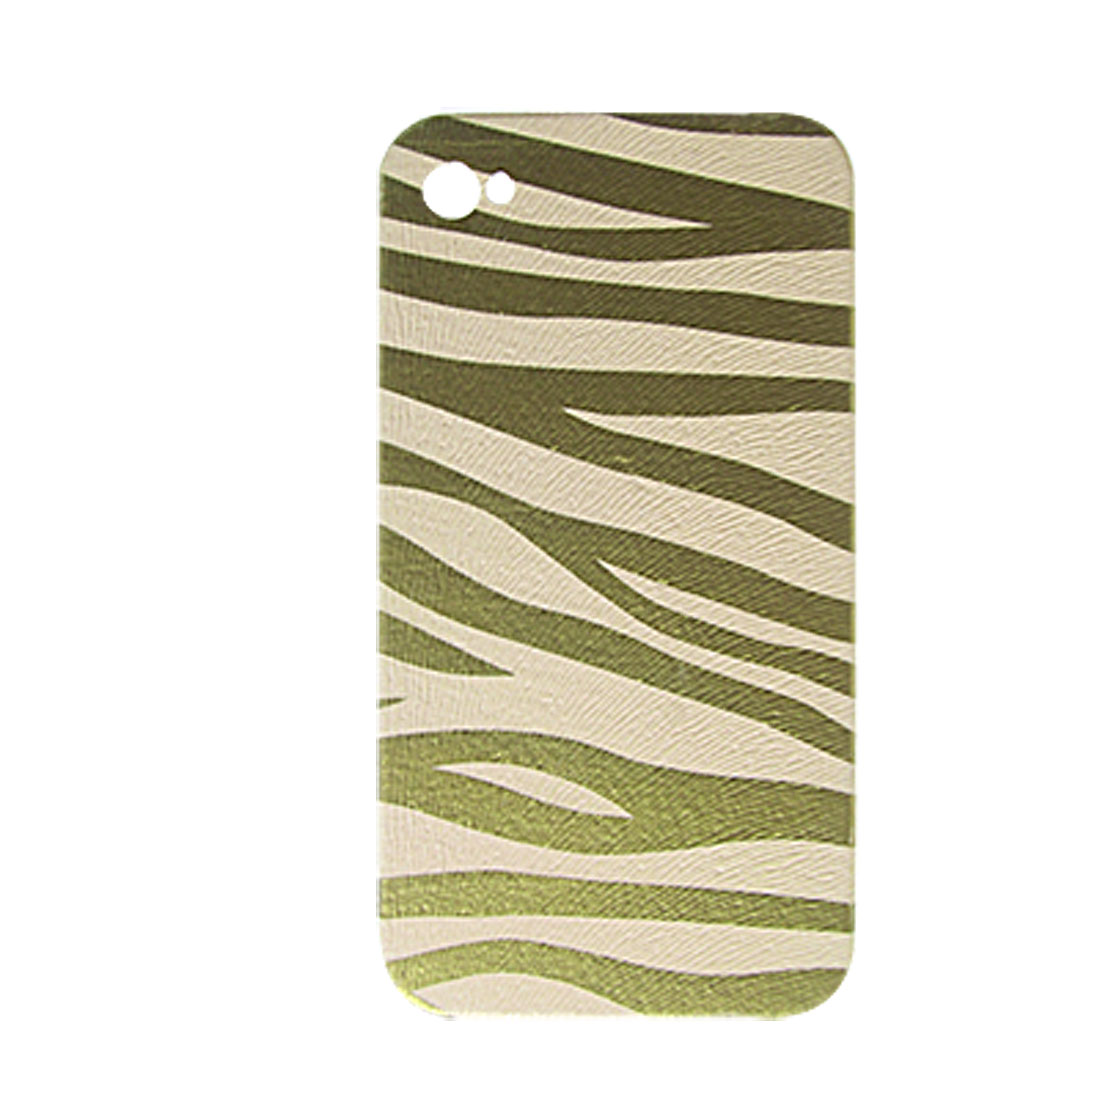 Zebra Print Case Hard Plastic Back Cover for iPhone 4 4G